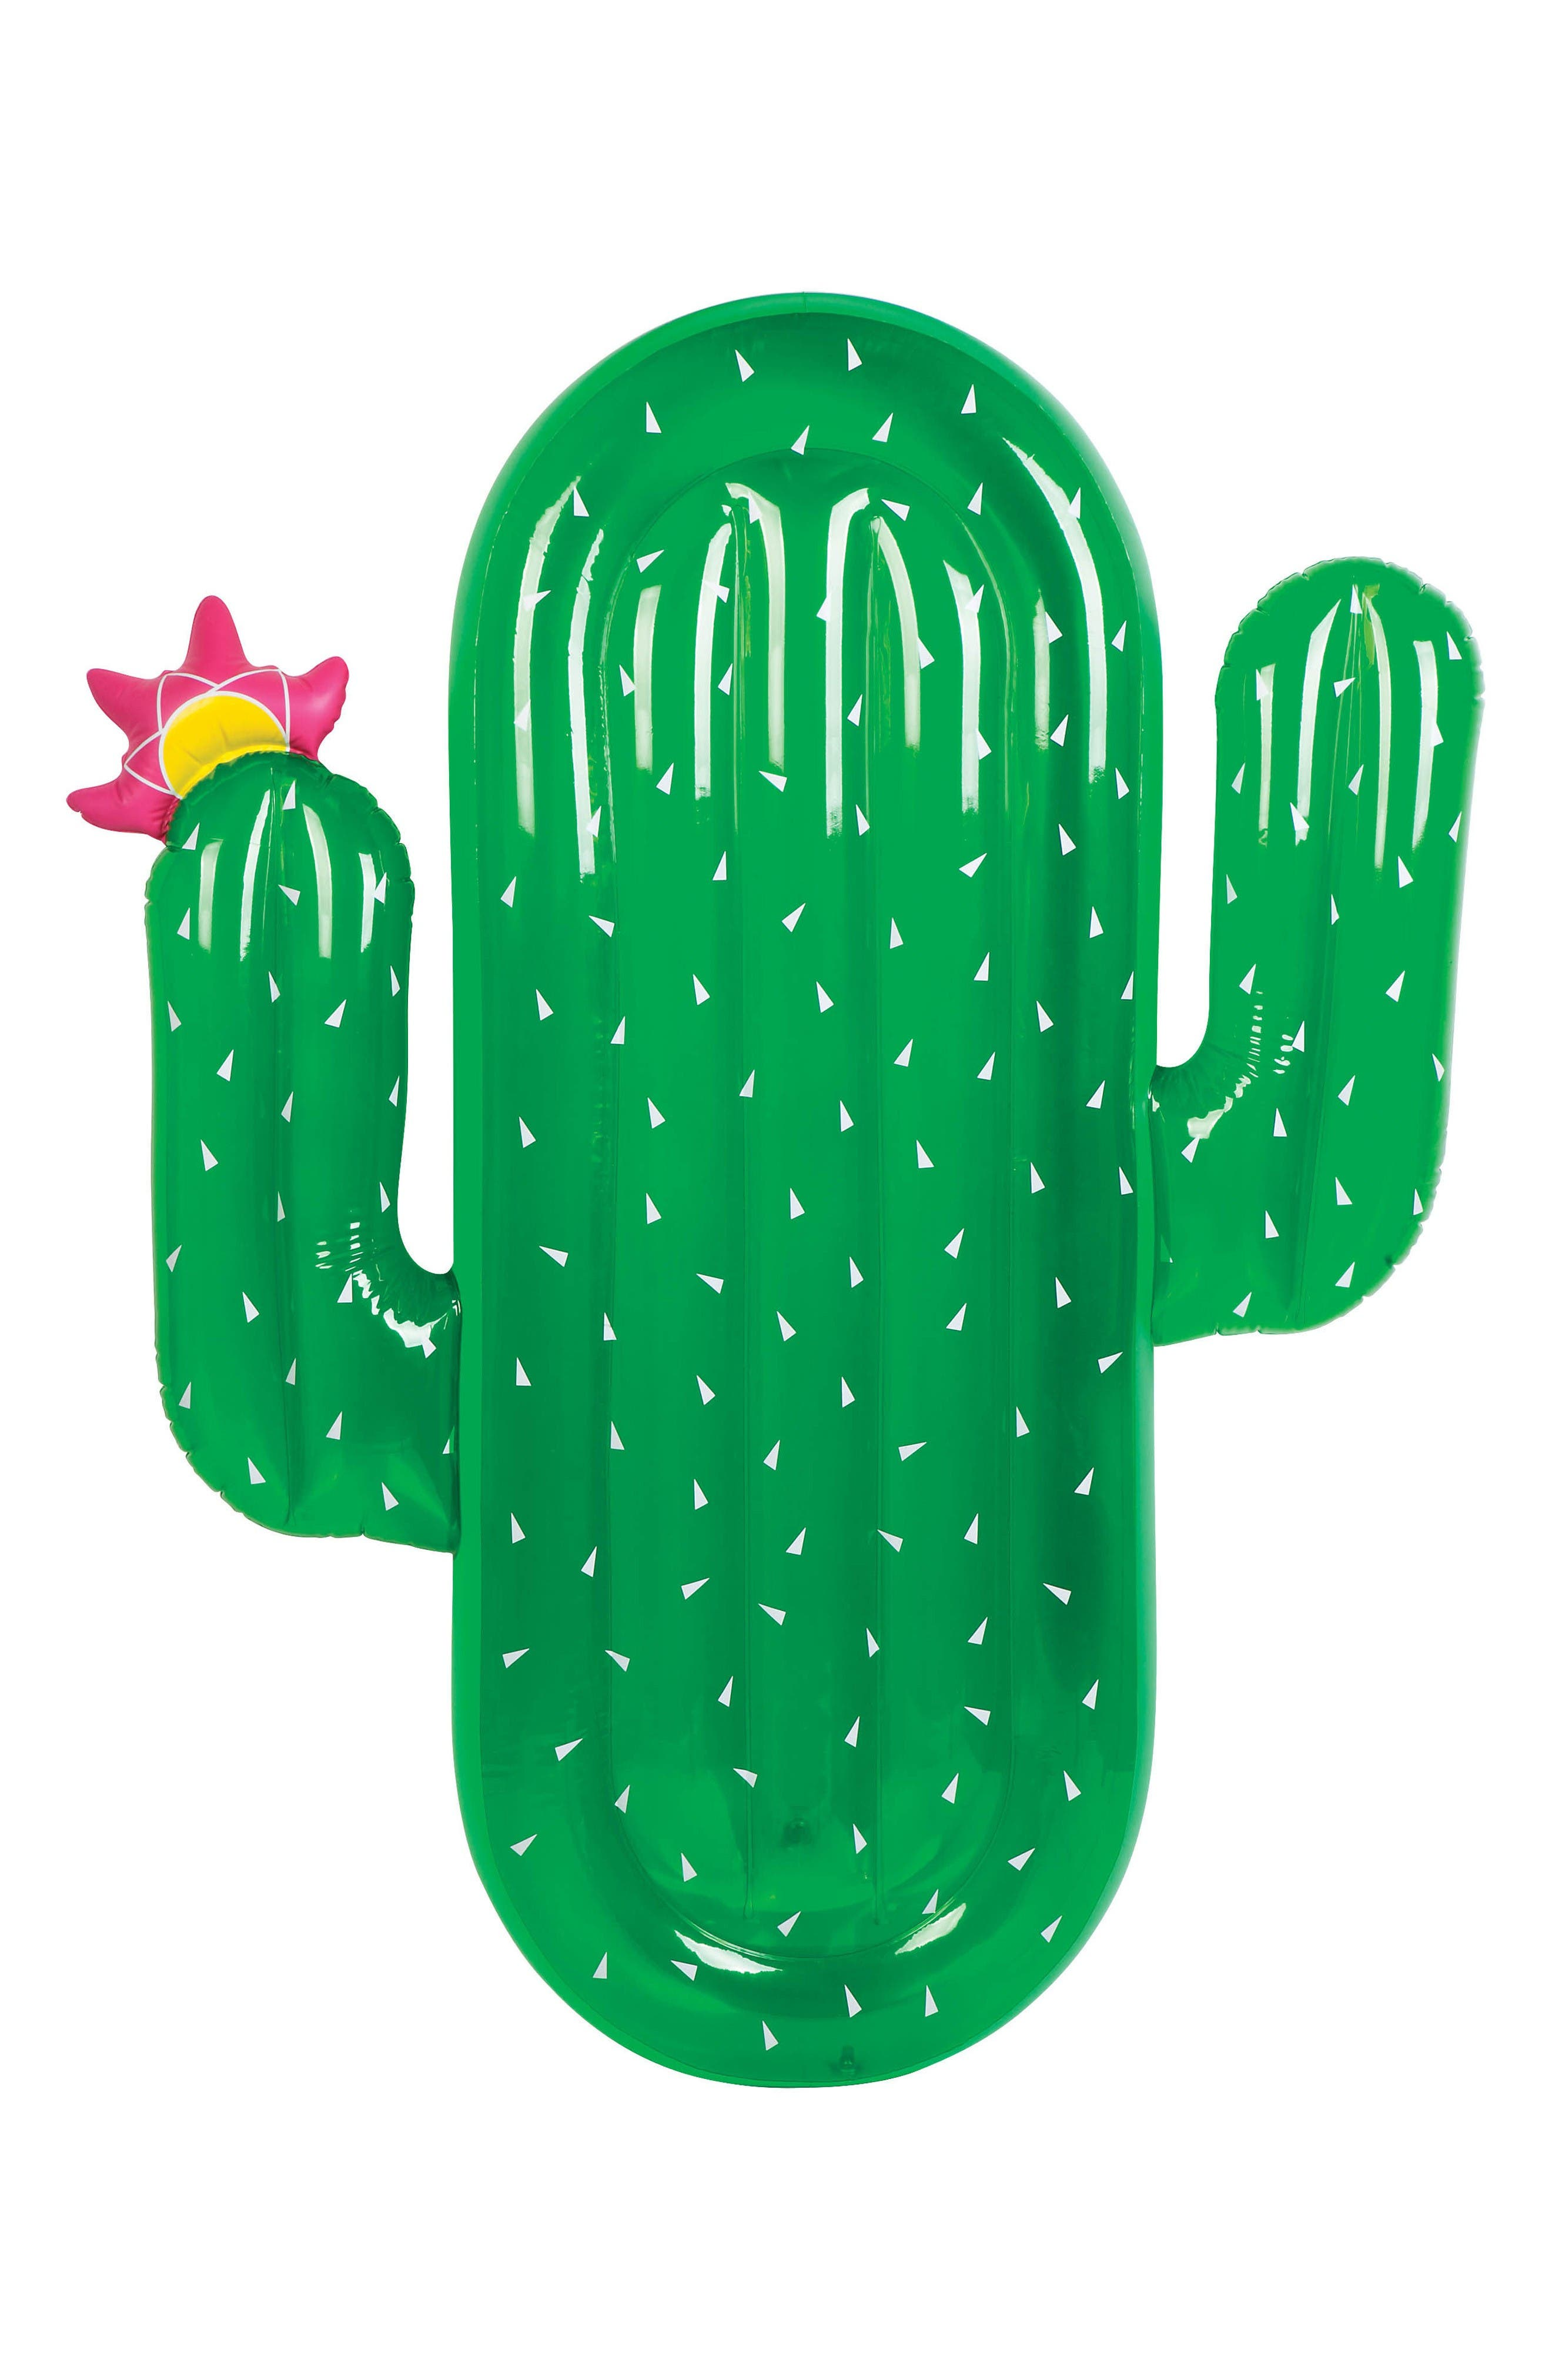 Alternate Image 1 Selected - Sunnylife Inflatable Cactus Pool Float